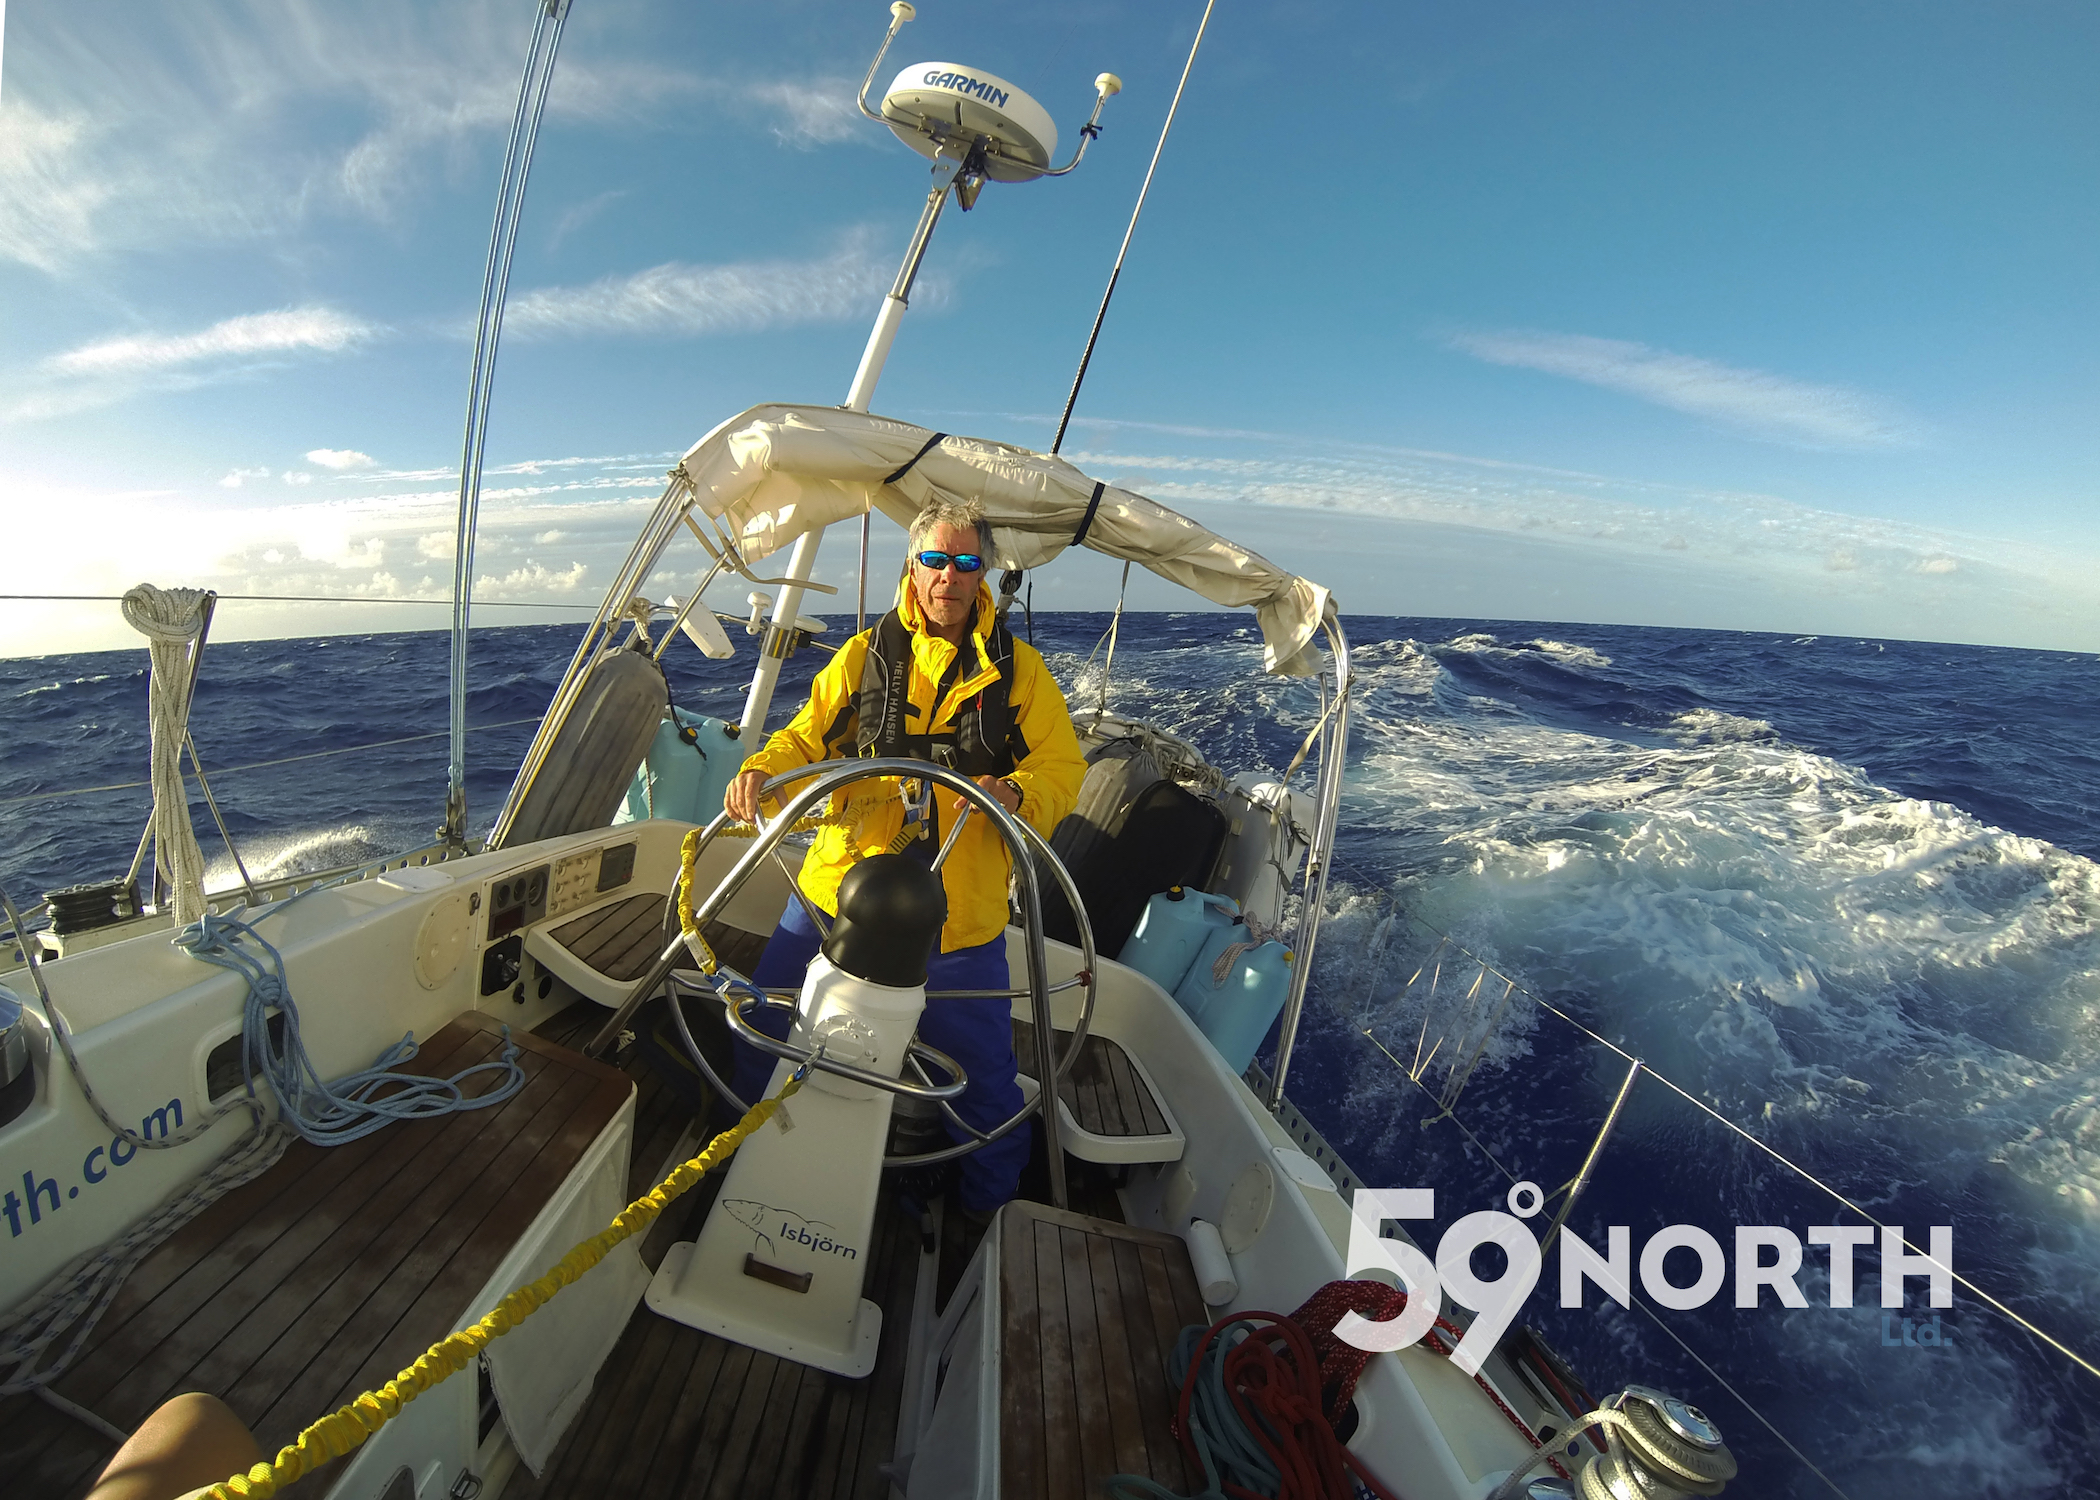 Crew Bruce steering in some impressing swells!